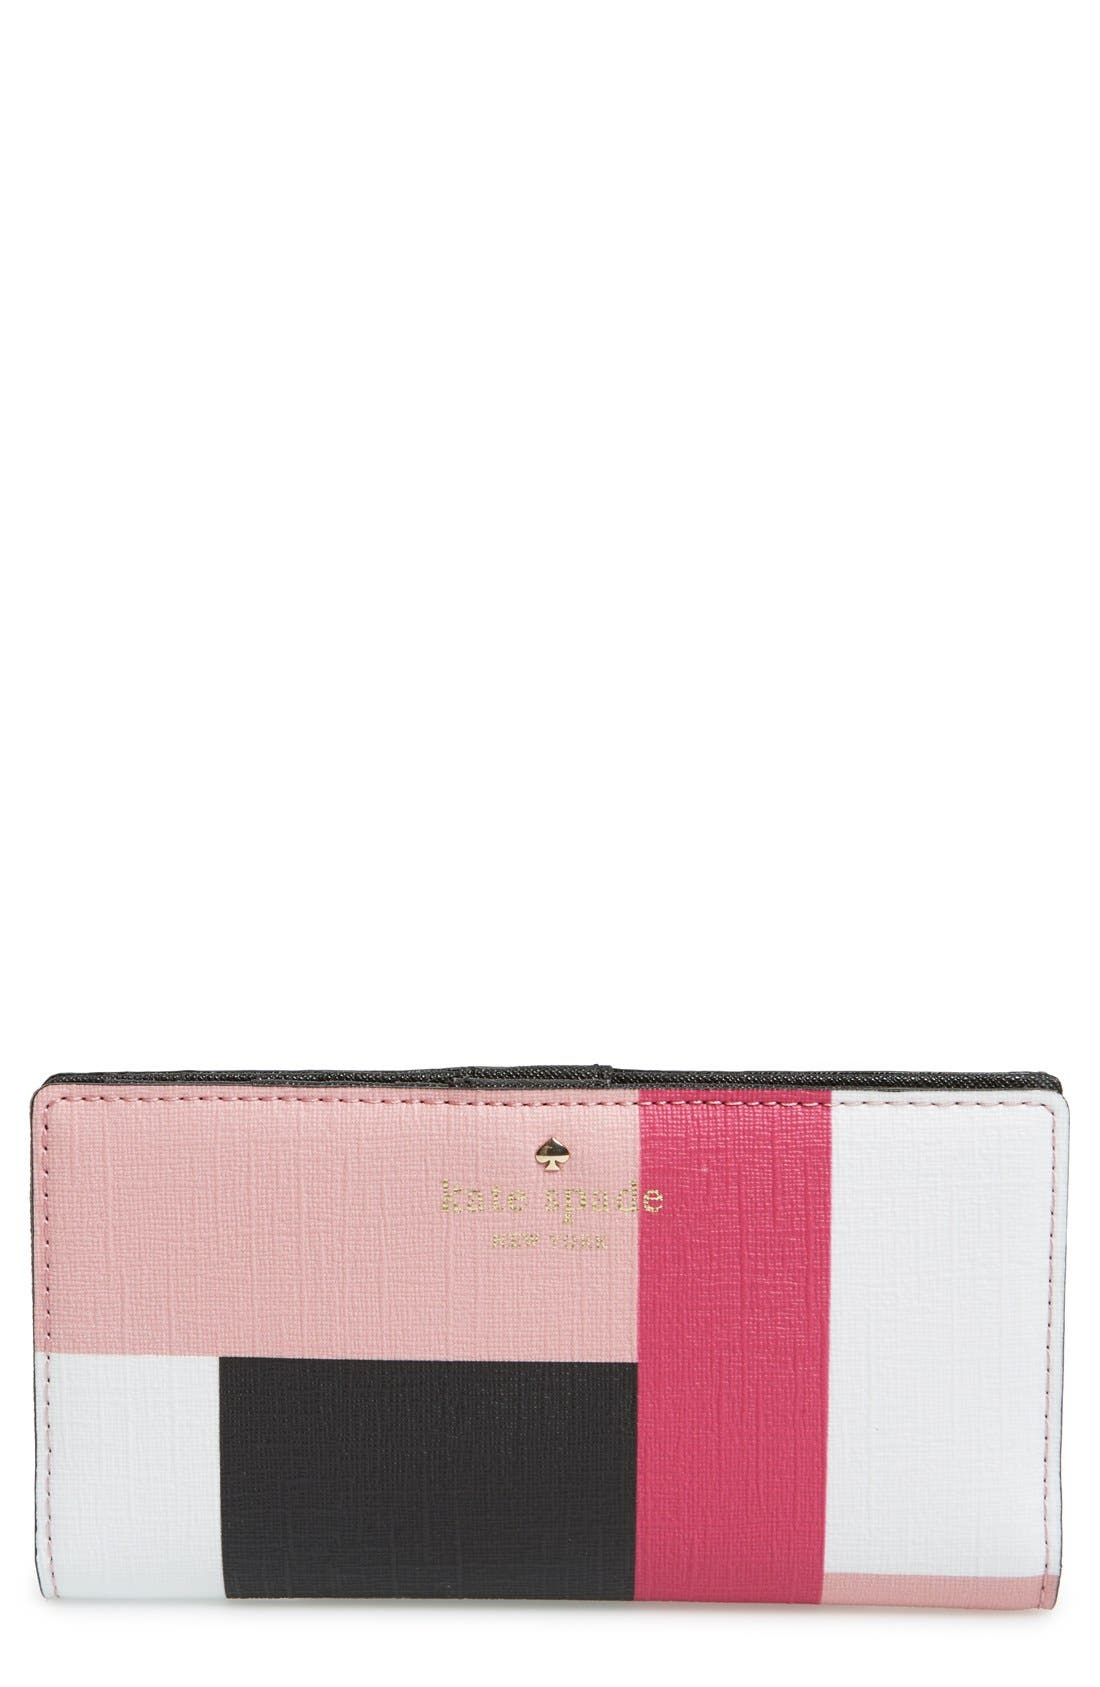 Alternate Image 1 Selected - kate spade new york 'emma lane - stacy' wallet